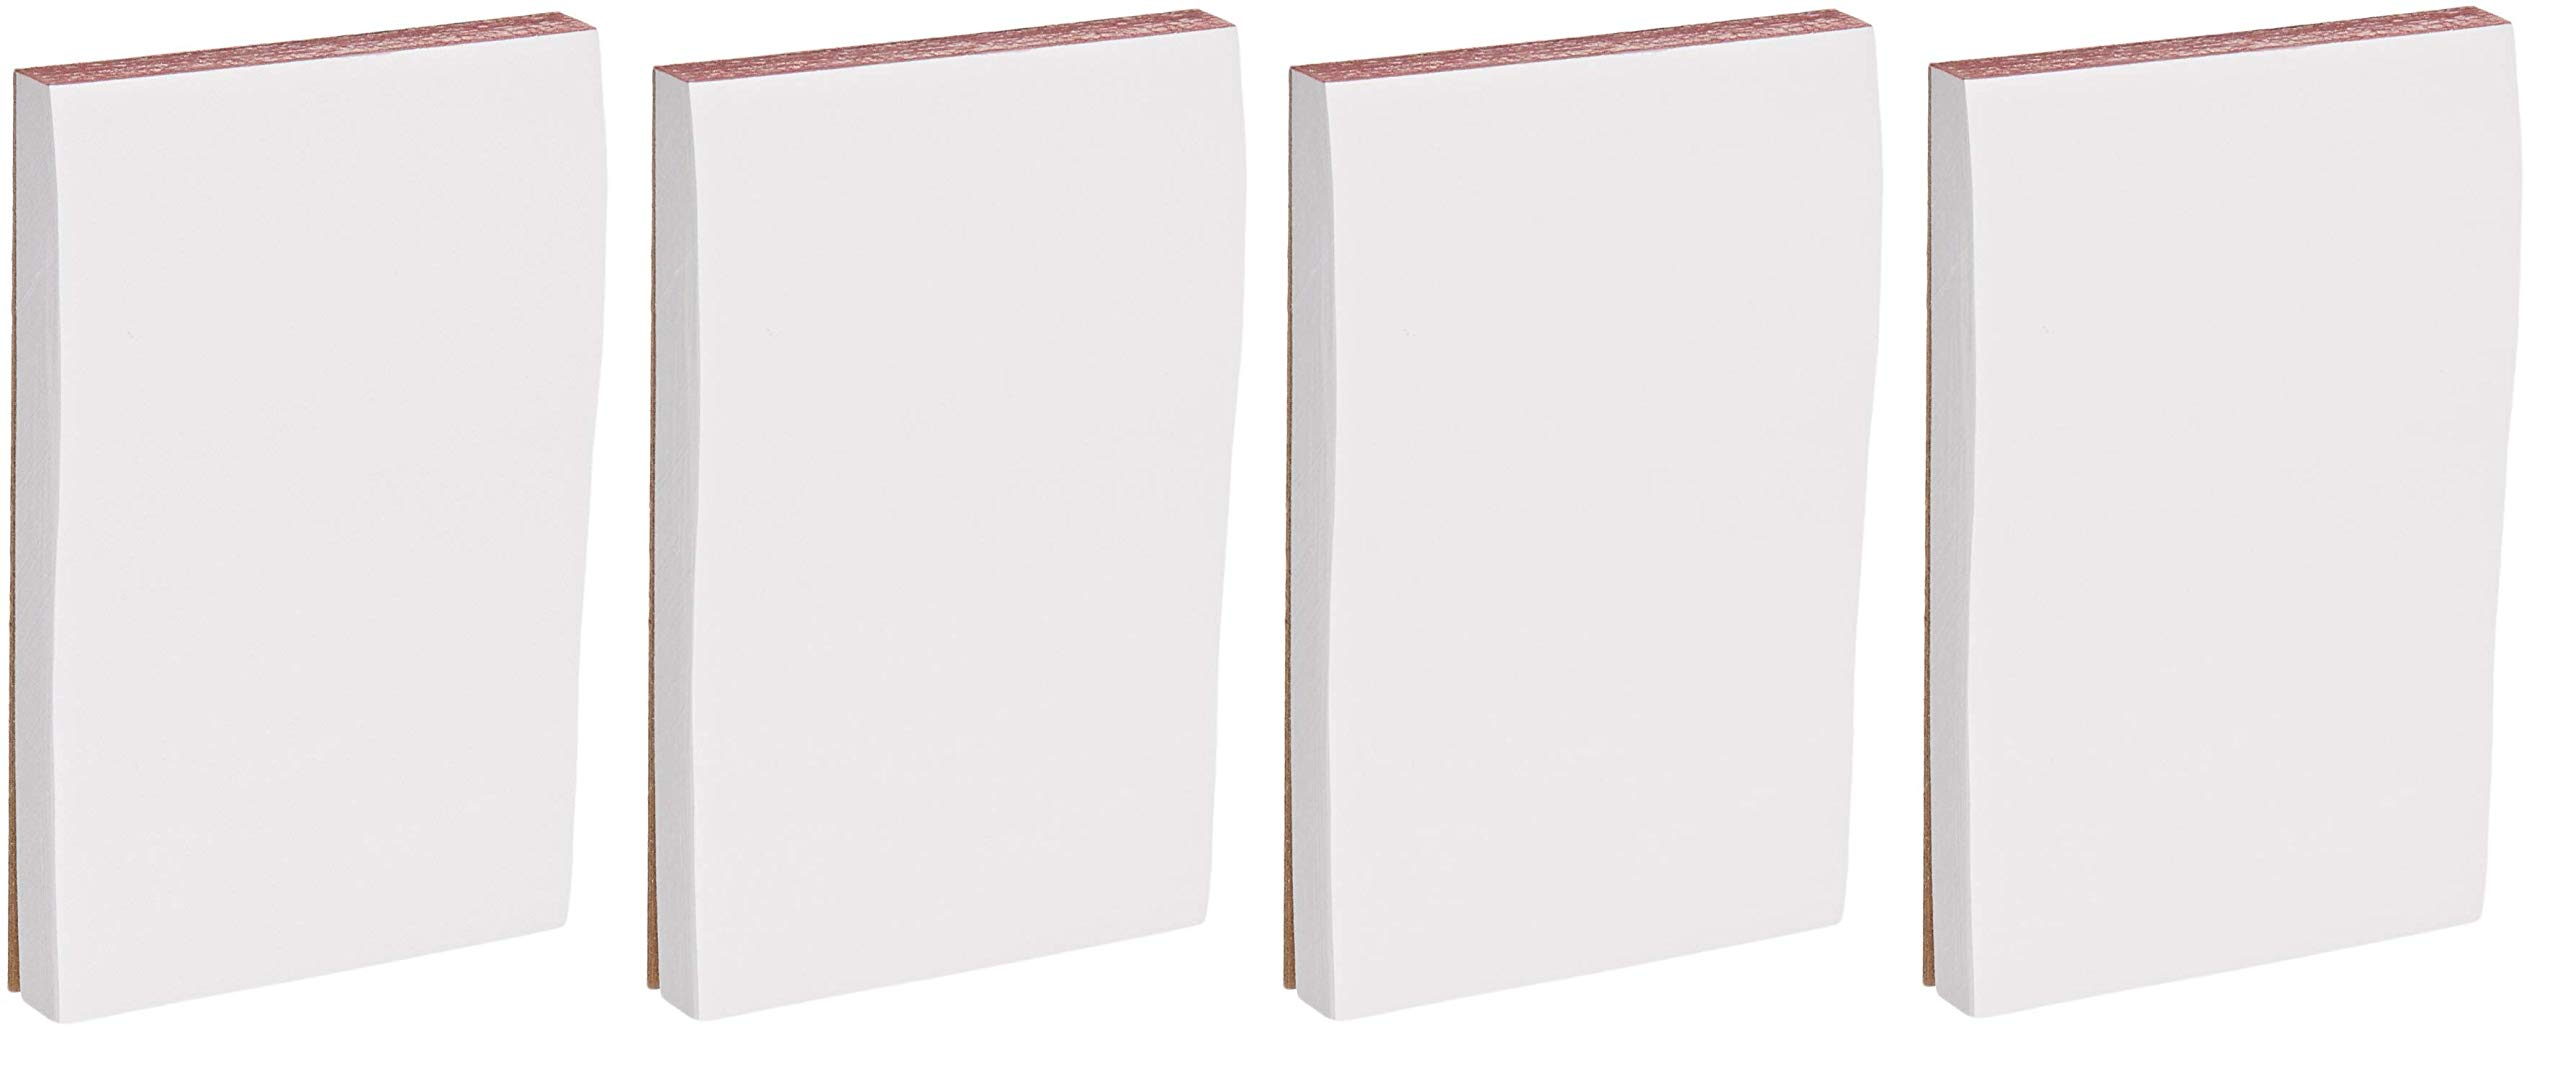 School Smart Scratch Pad, 3 x 5 Inches, 100 Sheets, White, Pack of 12 (Fоur Paсk, White)